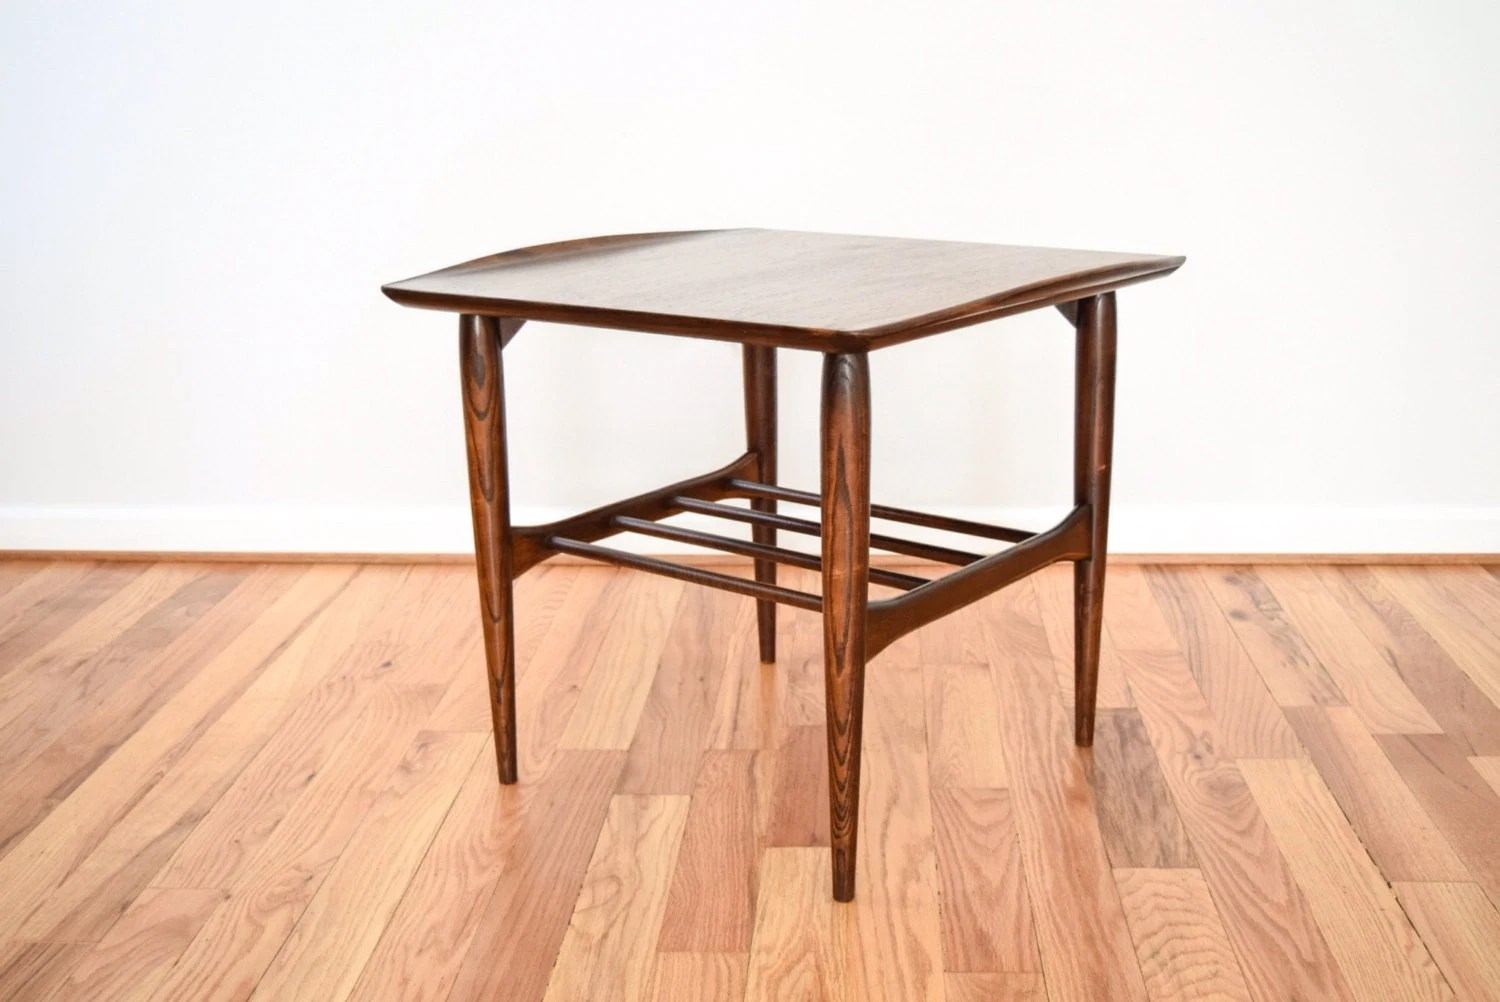 Amazing photo of  wood end table with storage shelf 1950s vintage – Haute Juice with #AD581E color and 1500x1002 pixels